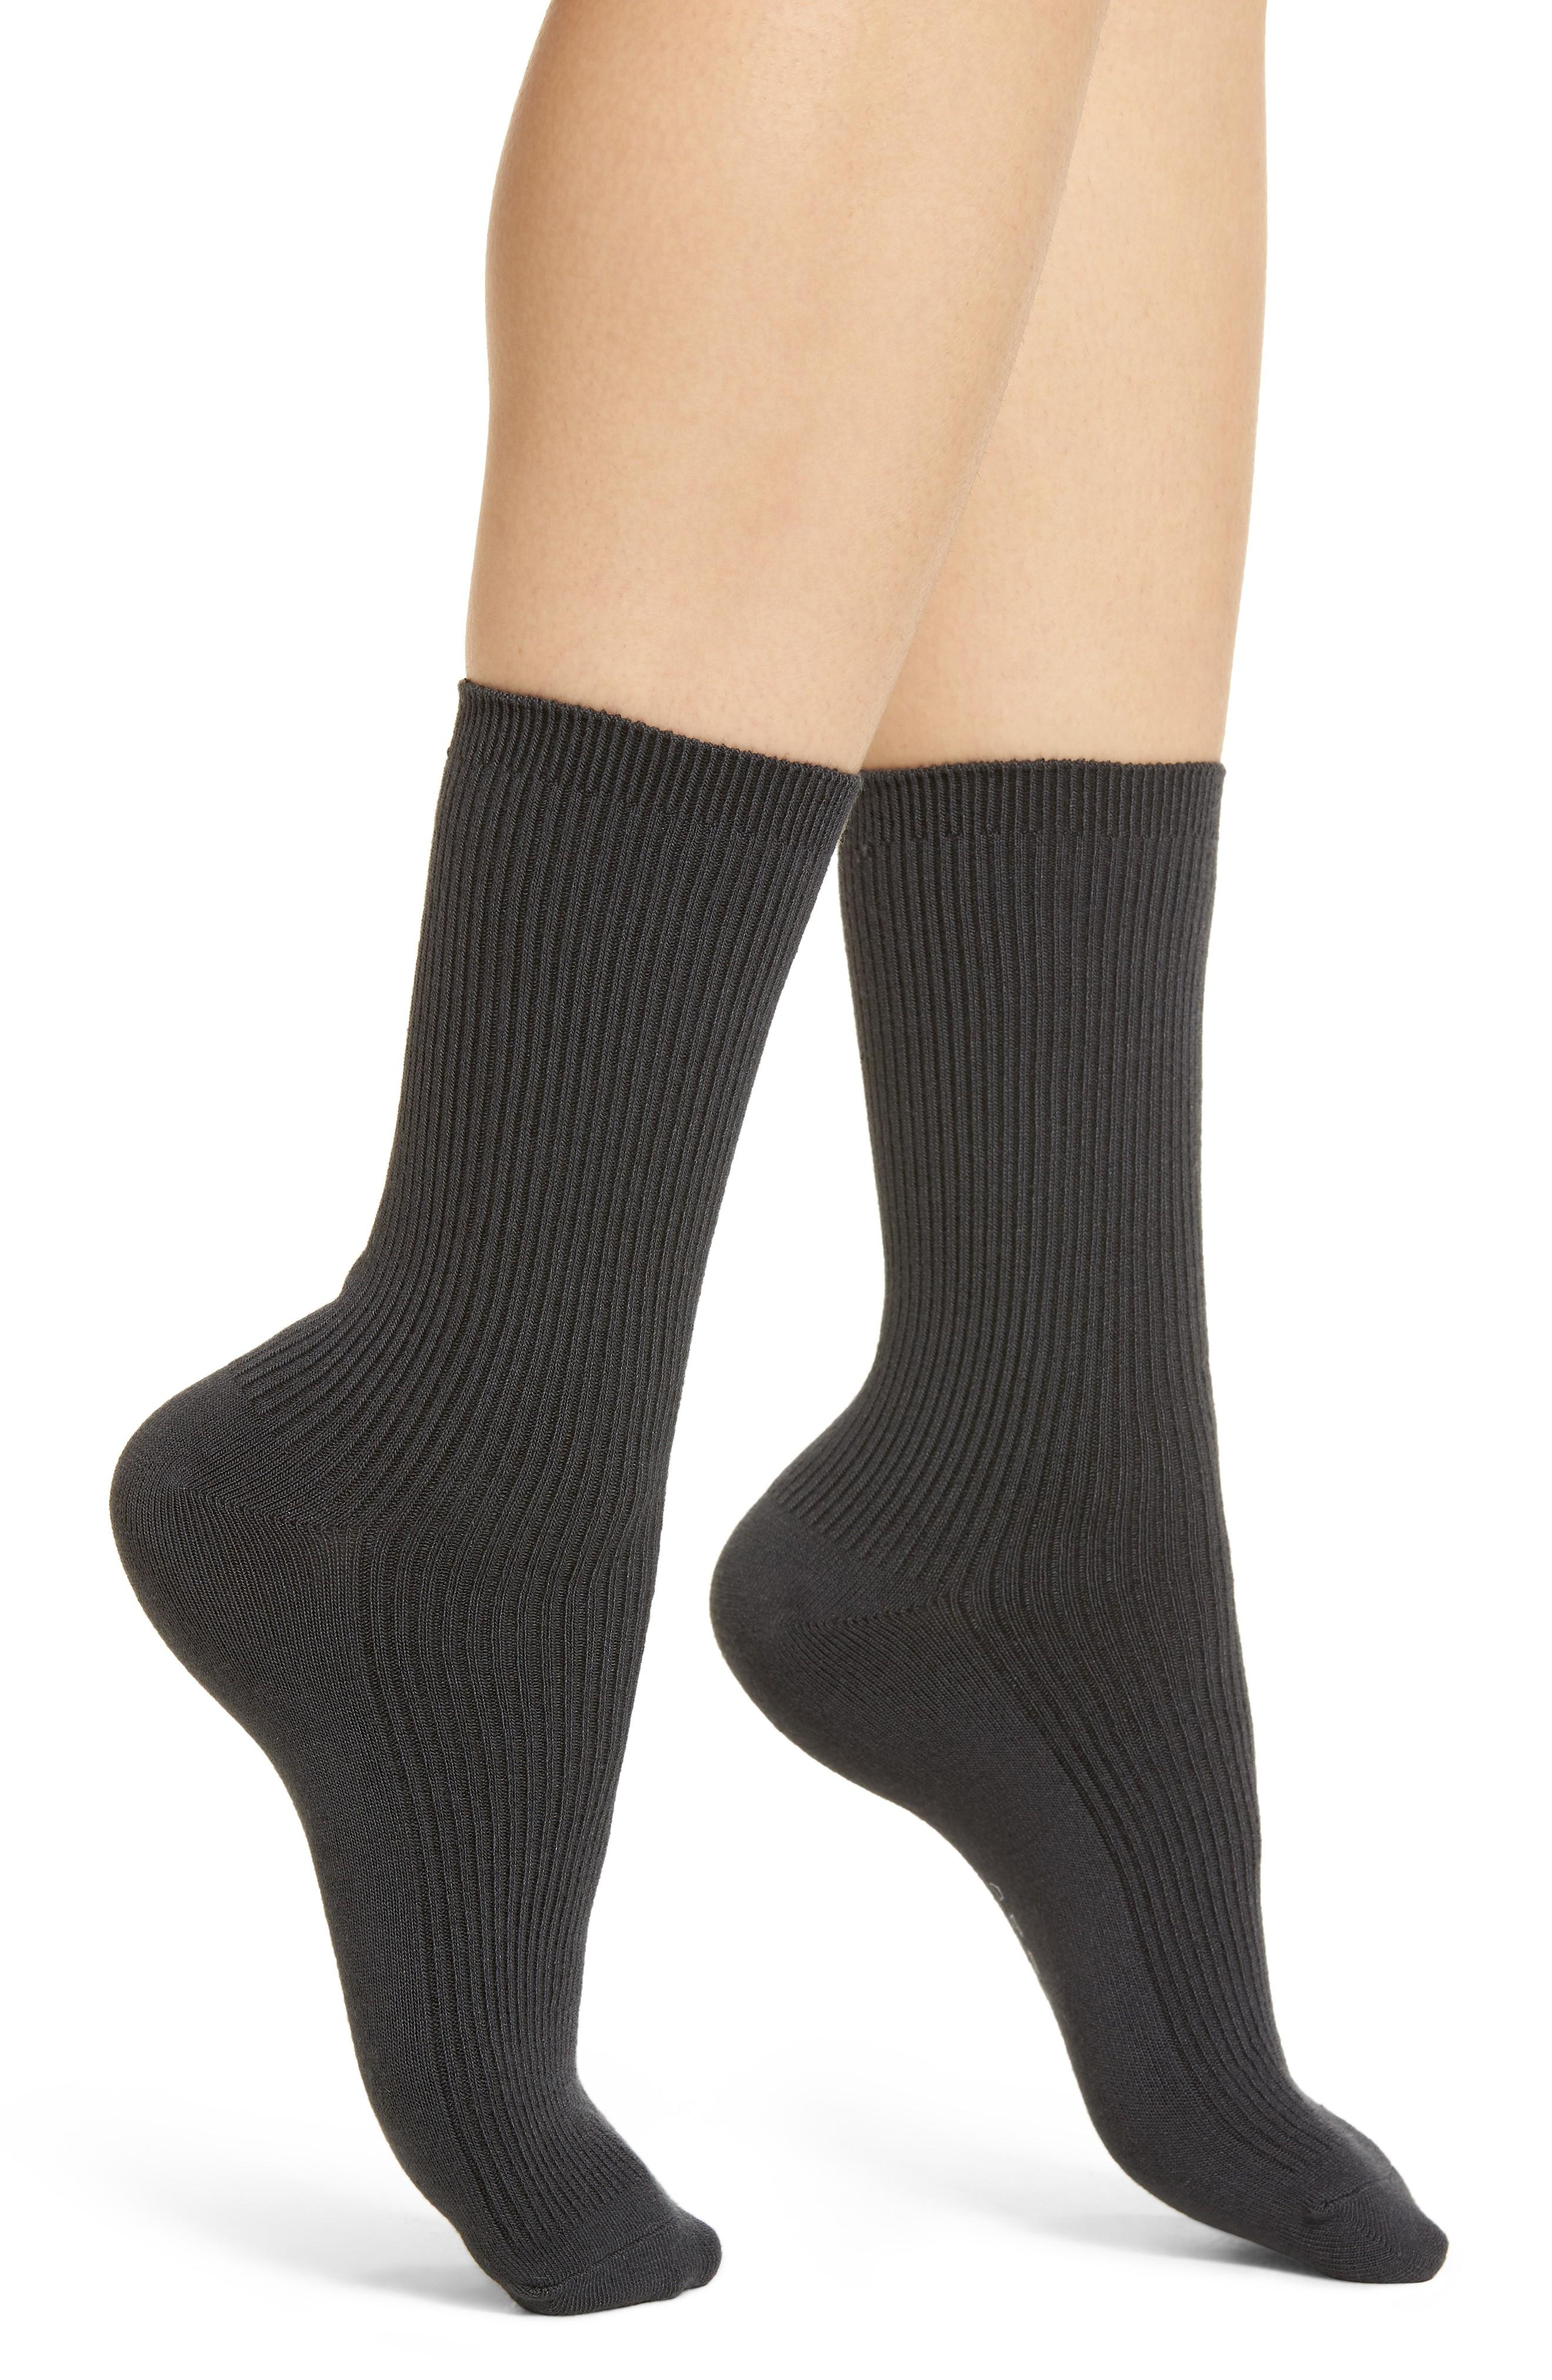 317a7d7b1 Richer Poorer Nightingale Crew Socks In Charcoal